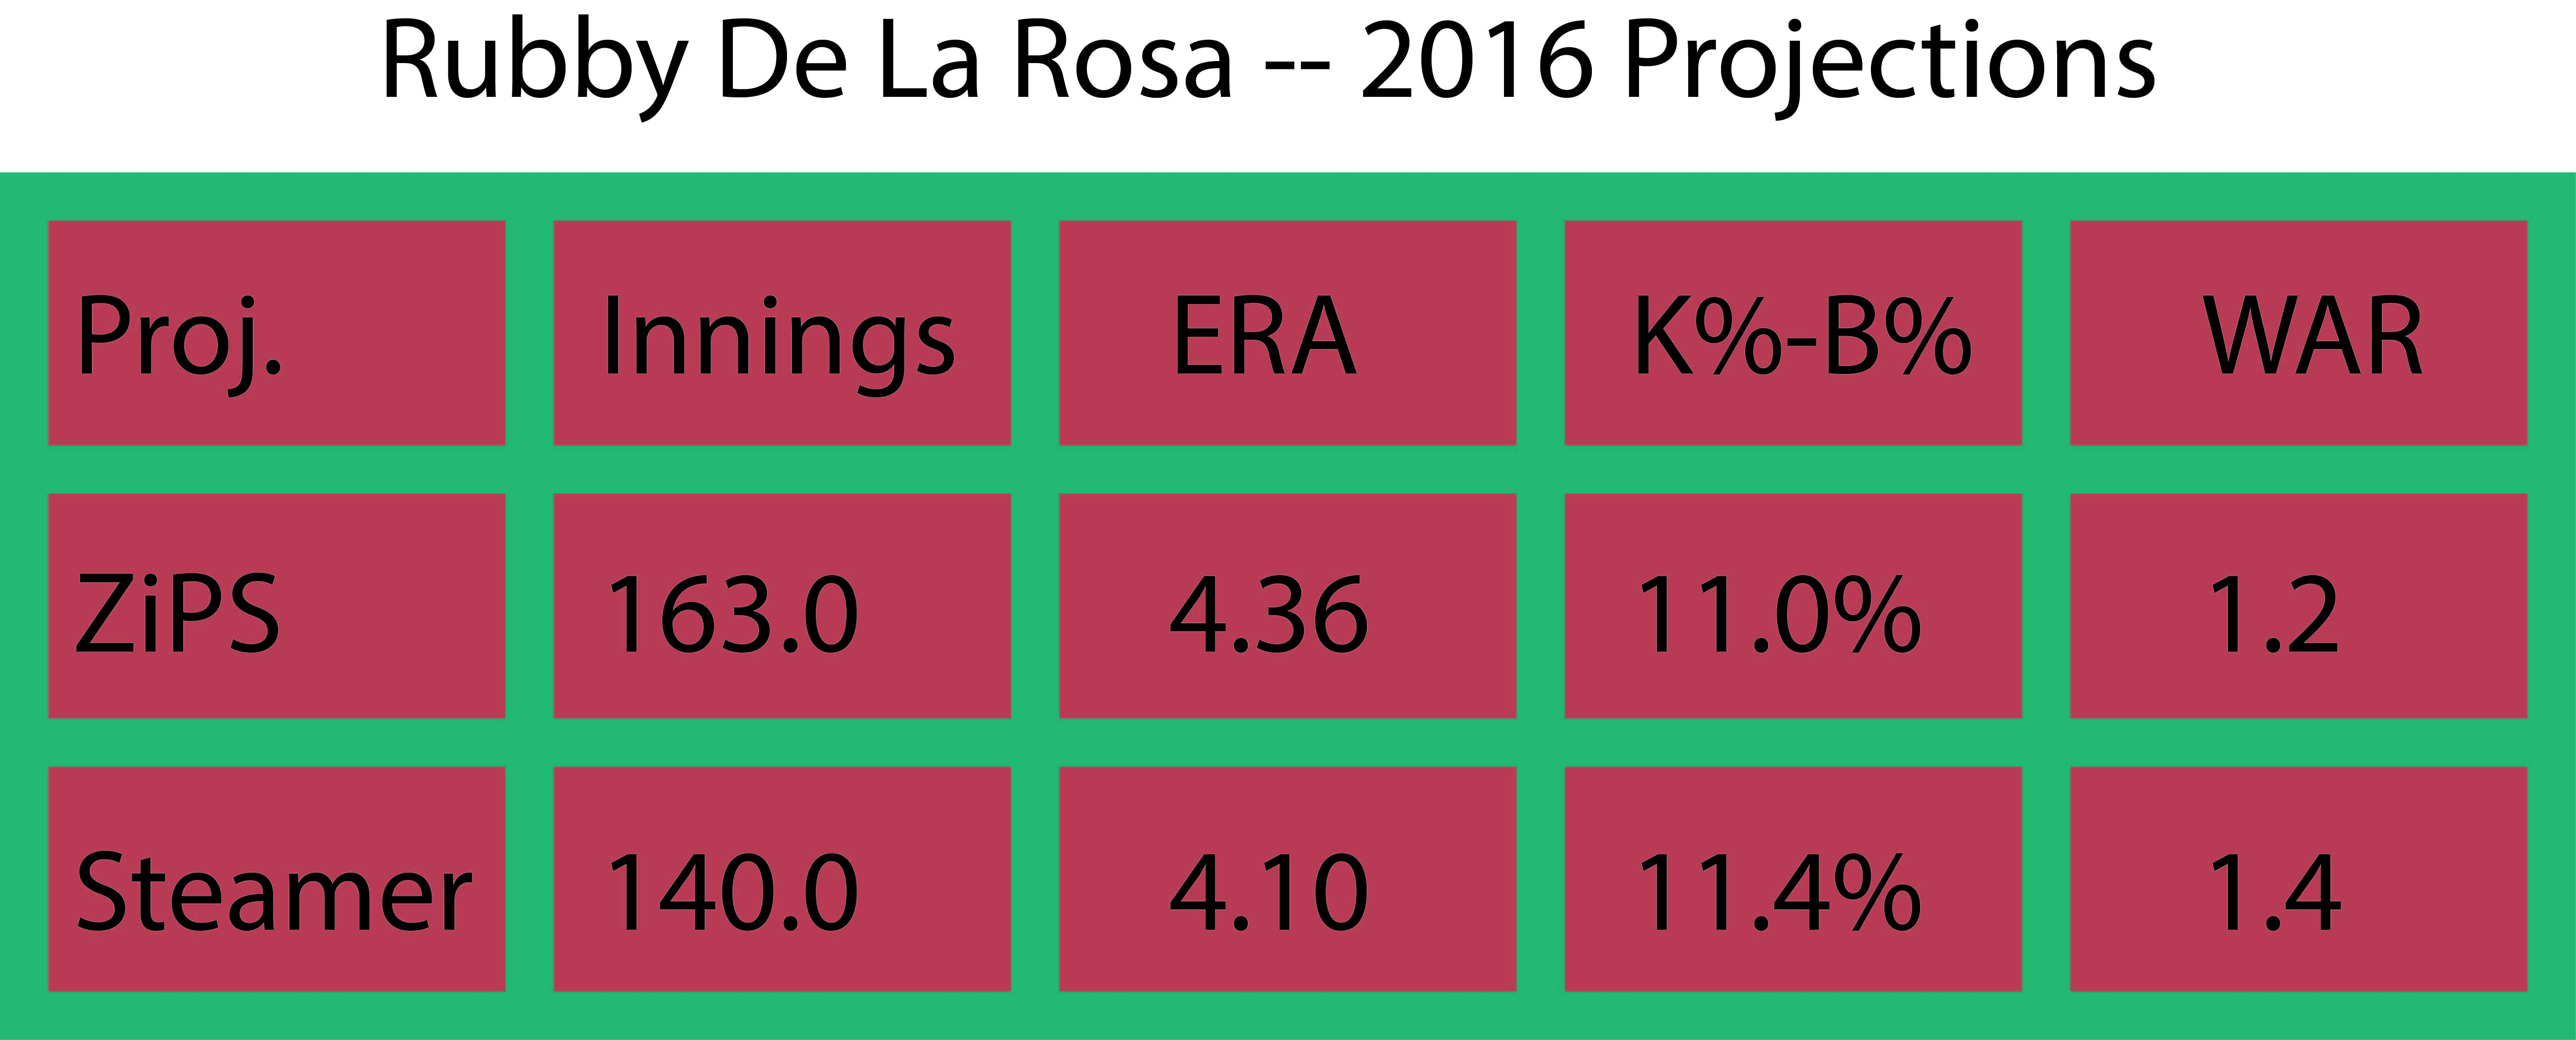 RDLR projections